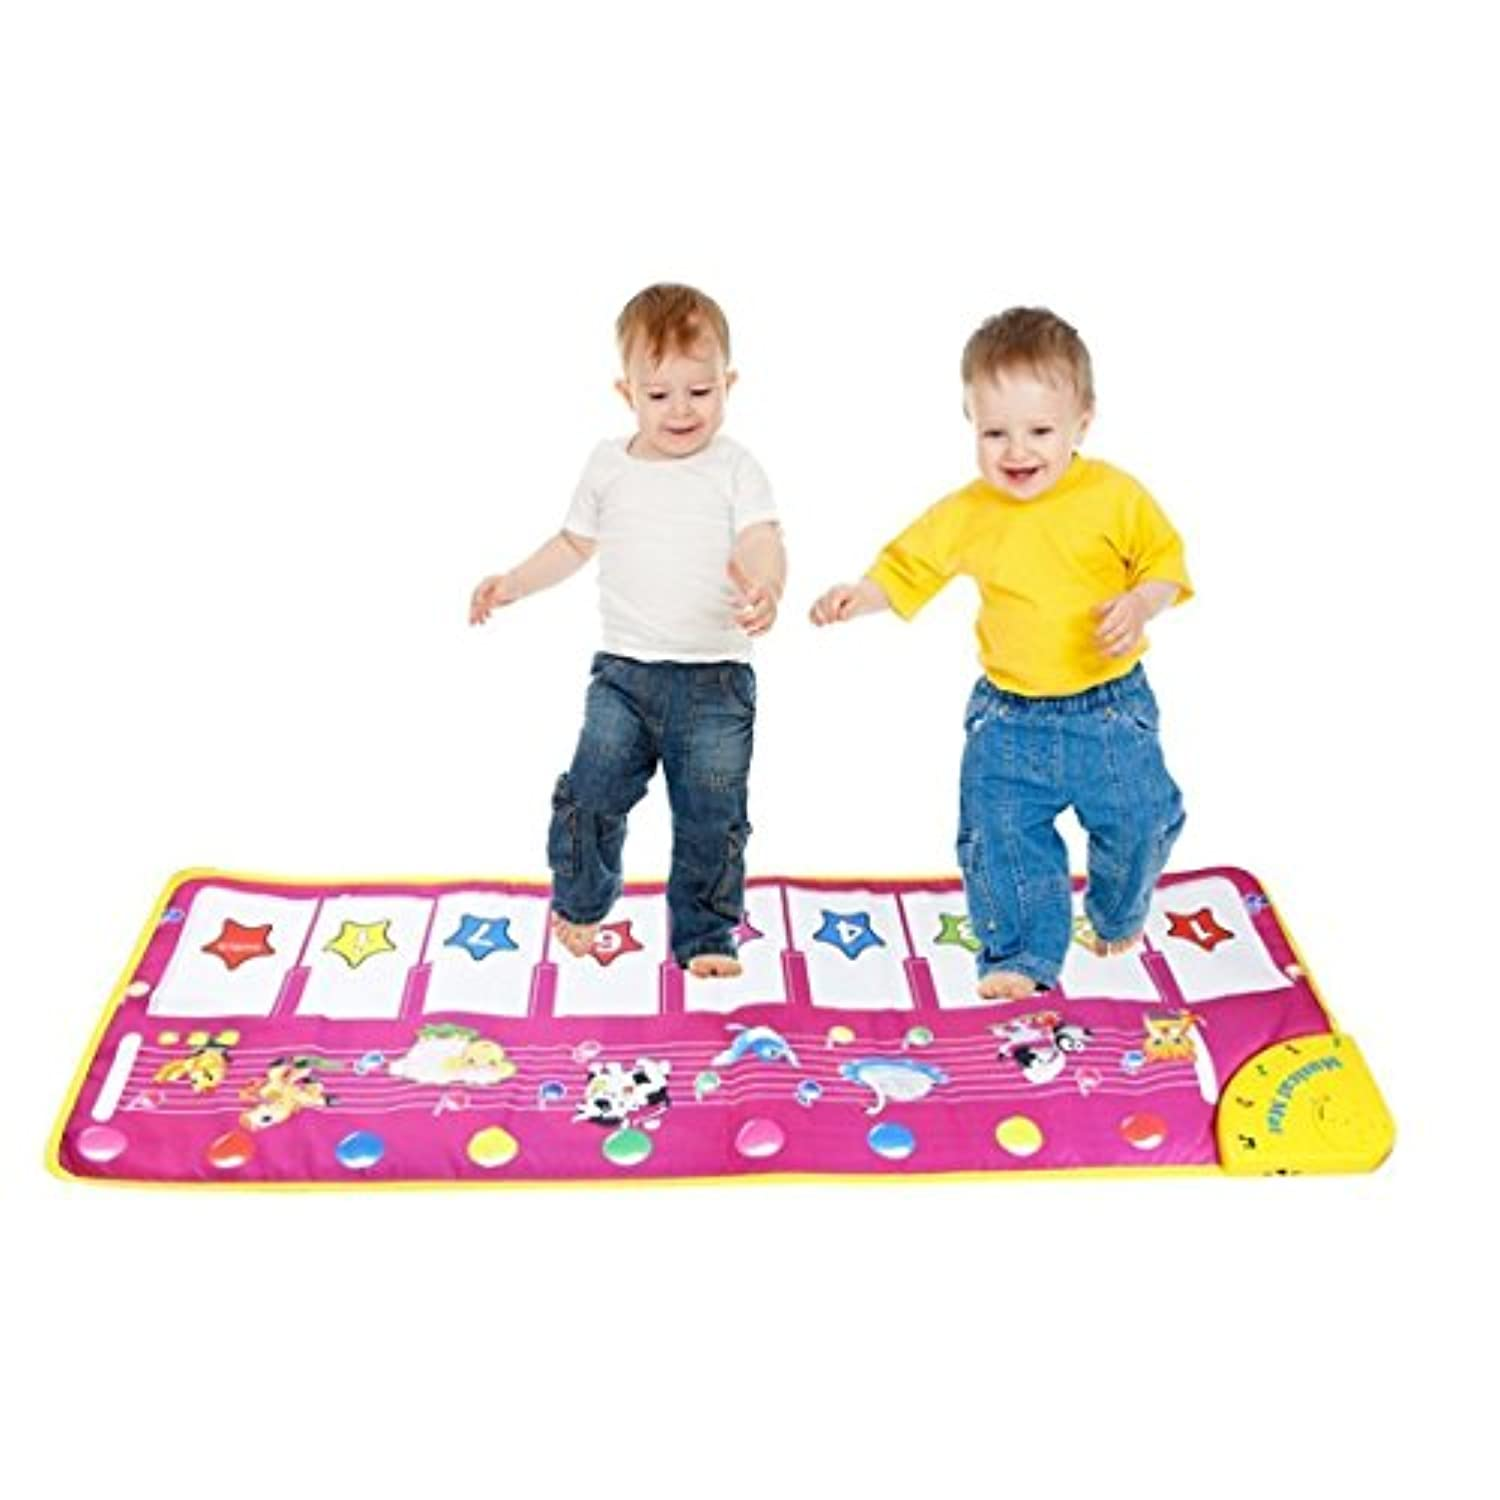 Pep-Baby? Musical Electronic Keyboard Piano Carpet Baby Activity Gym Play Mats by pepbaby